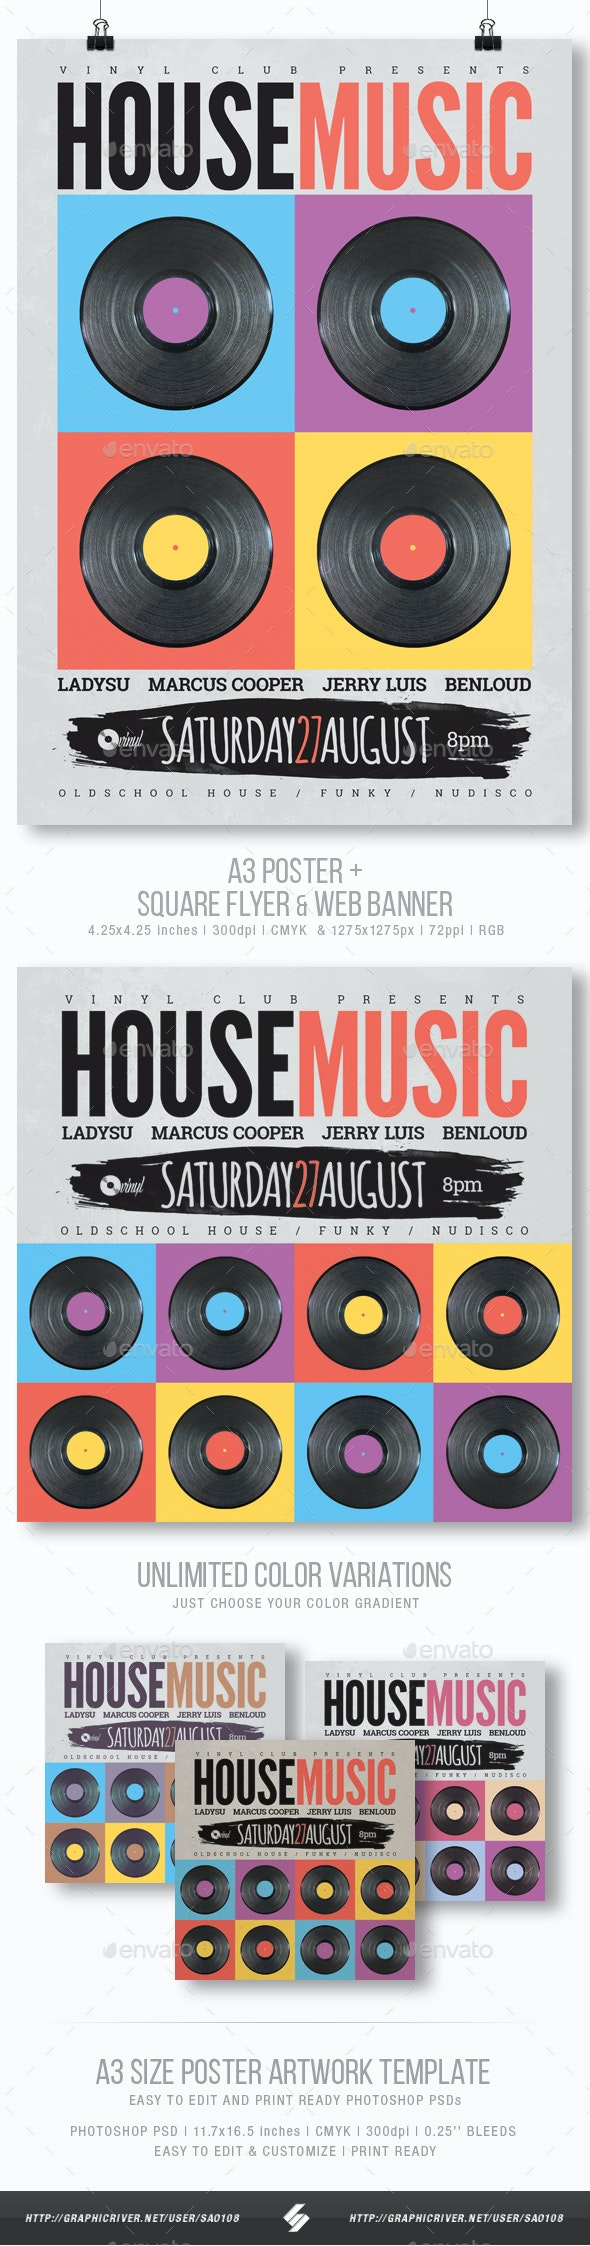 Retro House Music Party Flyer / Poster Template A3 - Clubs & Parties Events